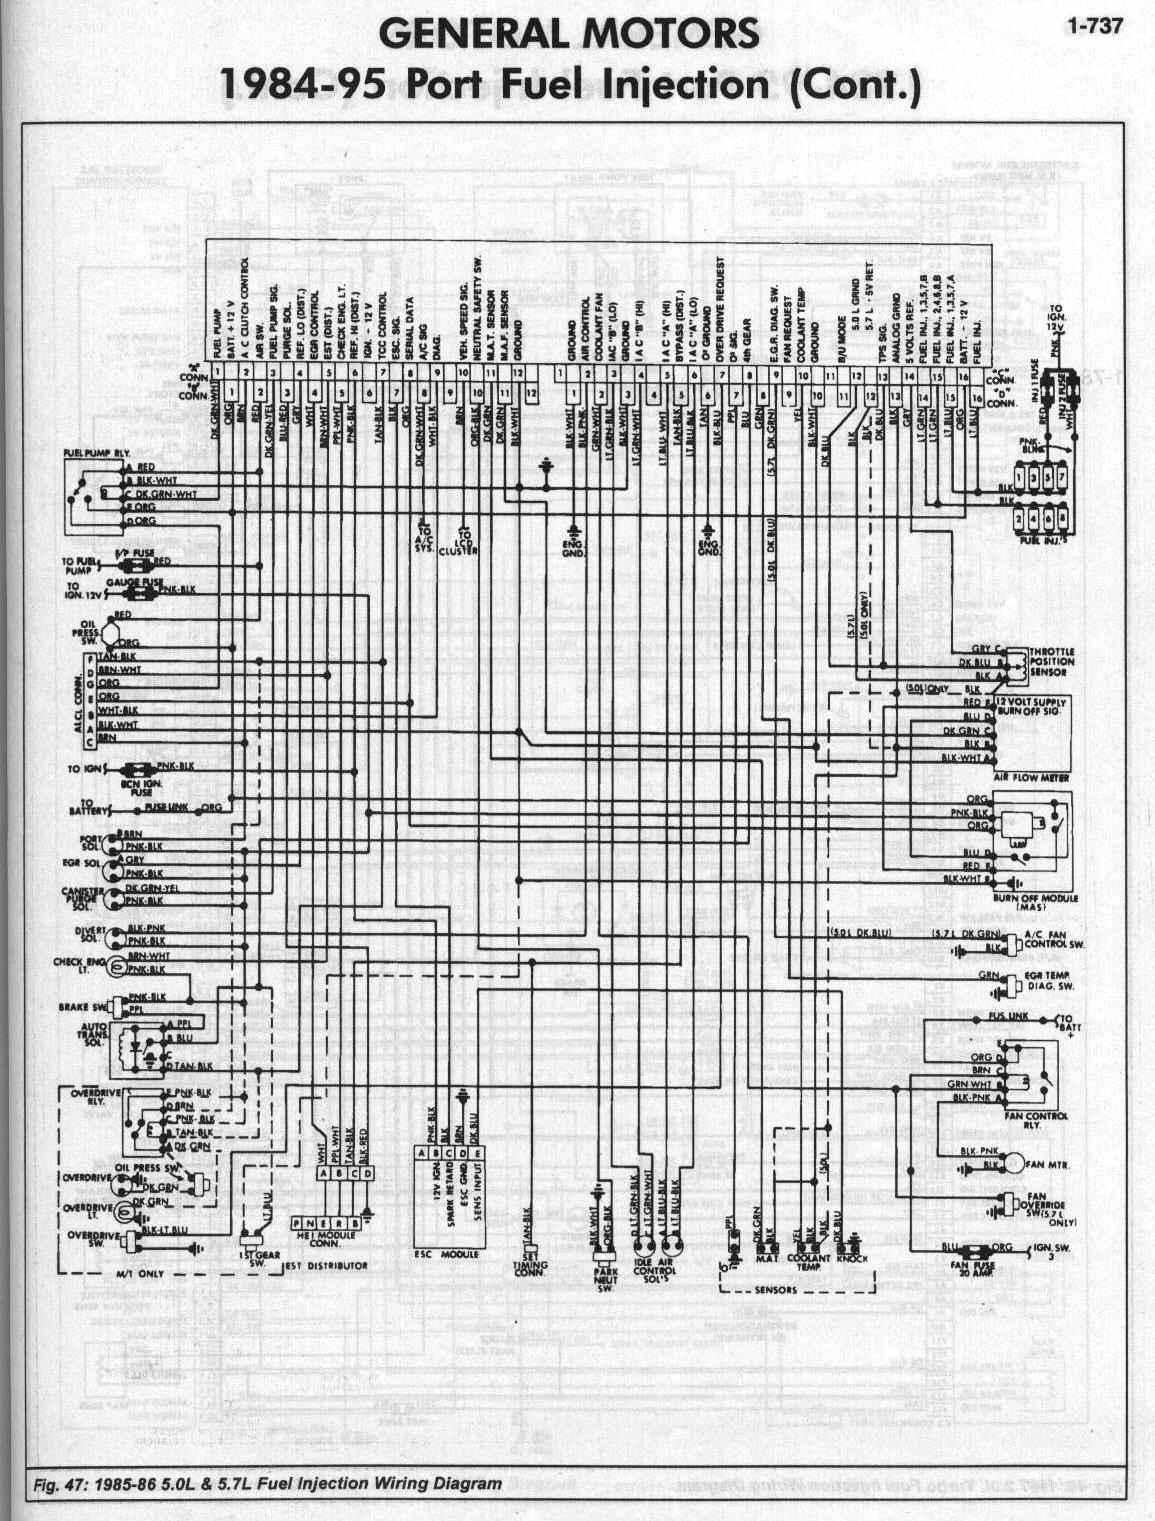 89 Camaro Schematic Wiring Library 96 Firebird Diagram Diagrams